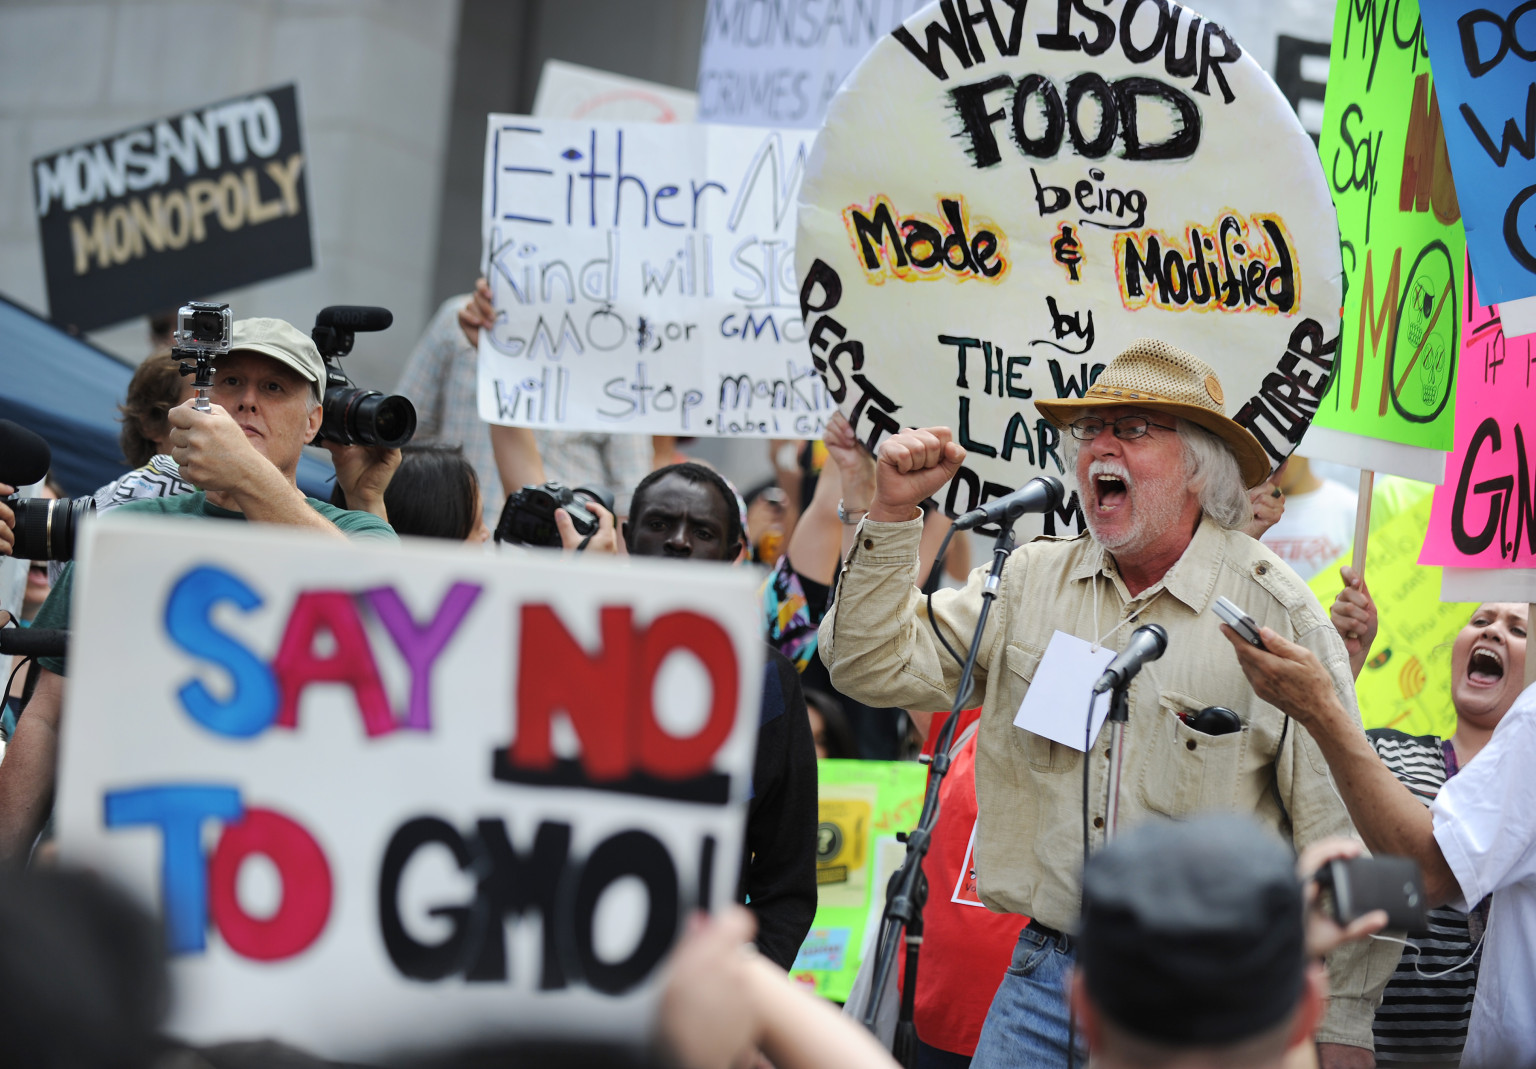 gm foods and world hunger